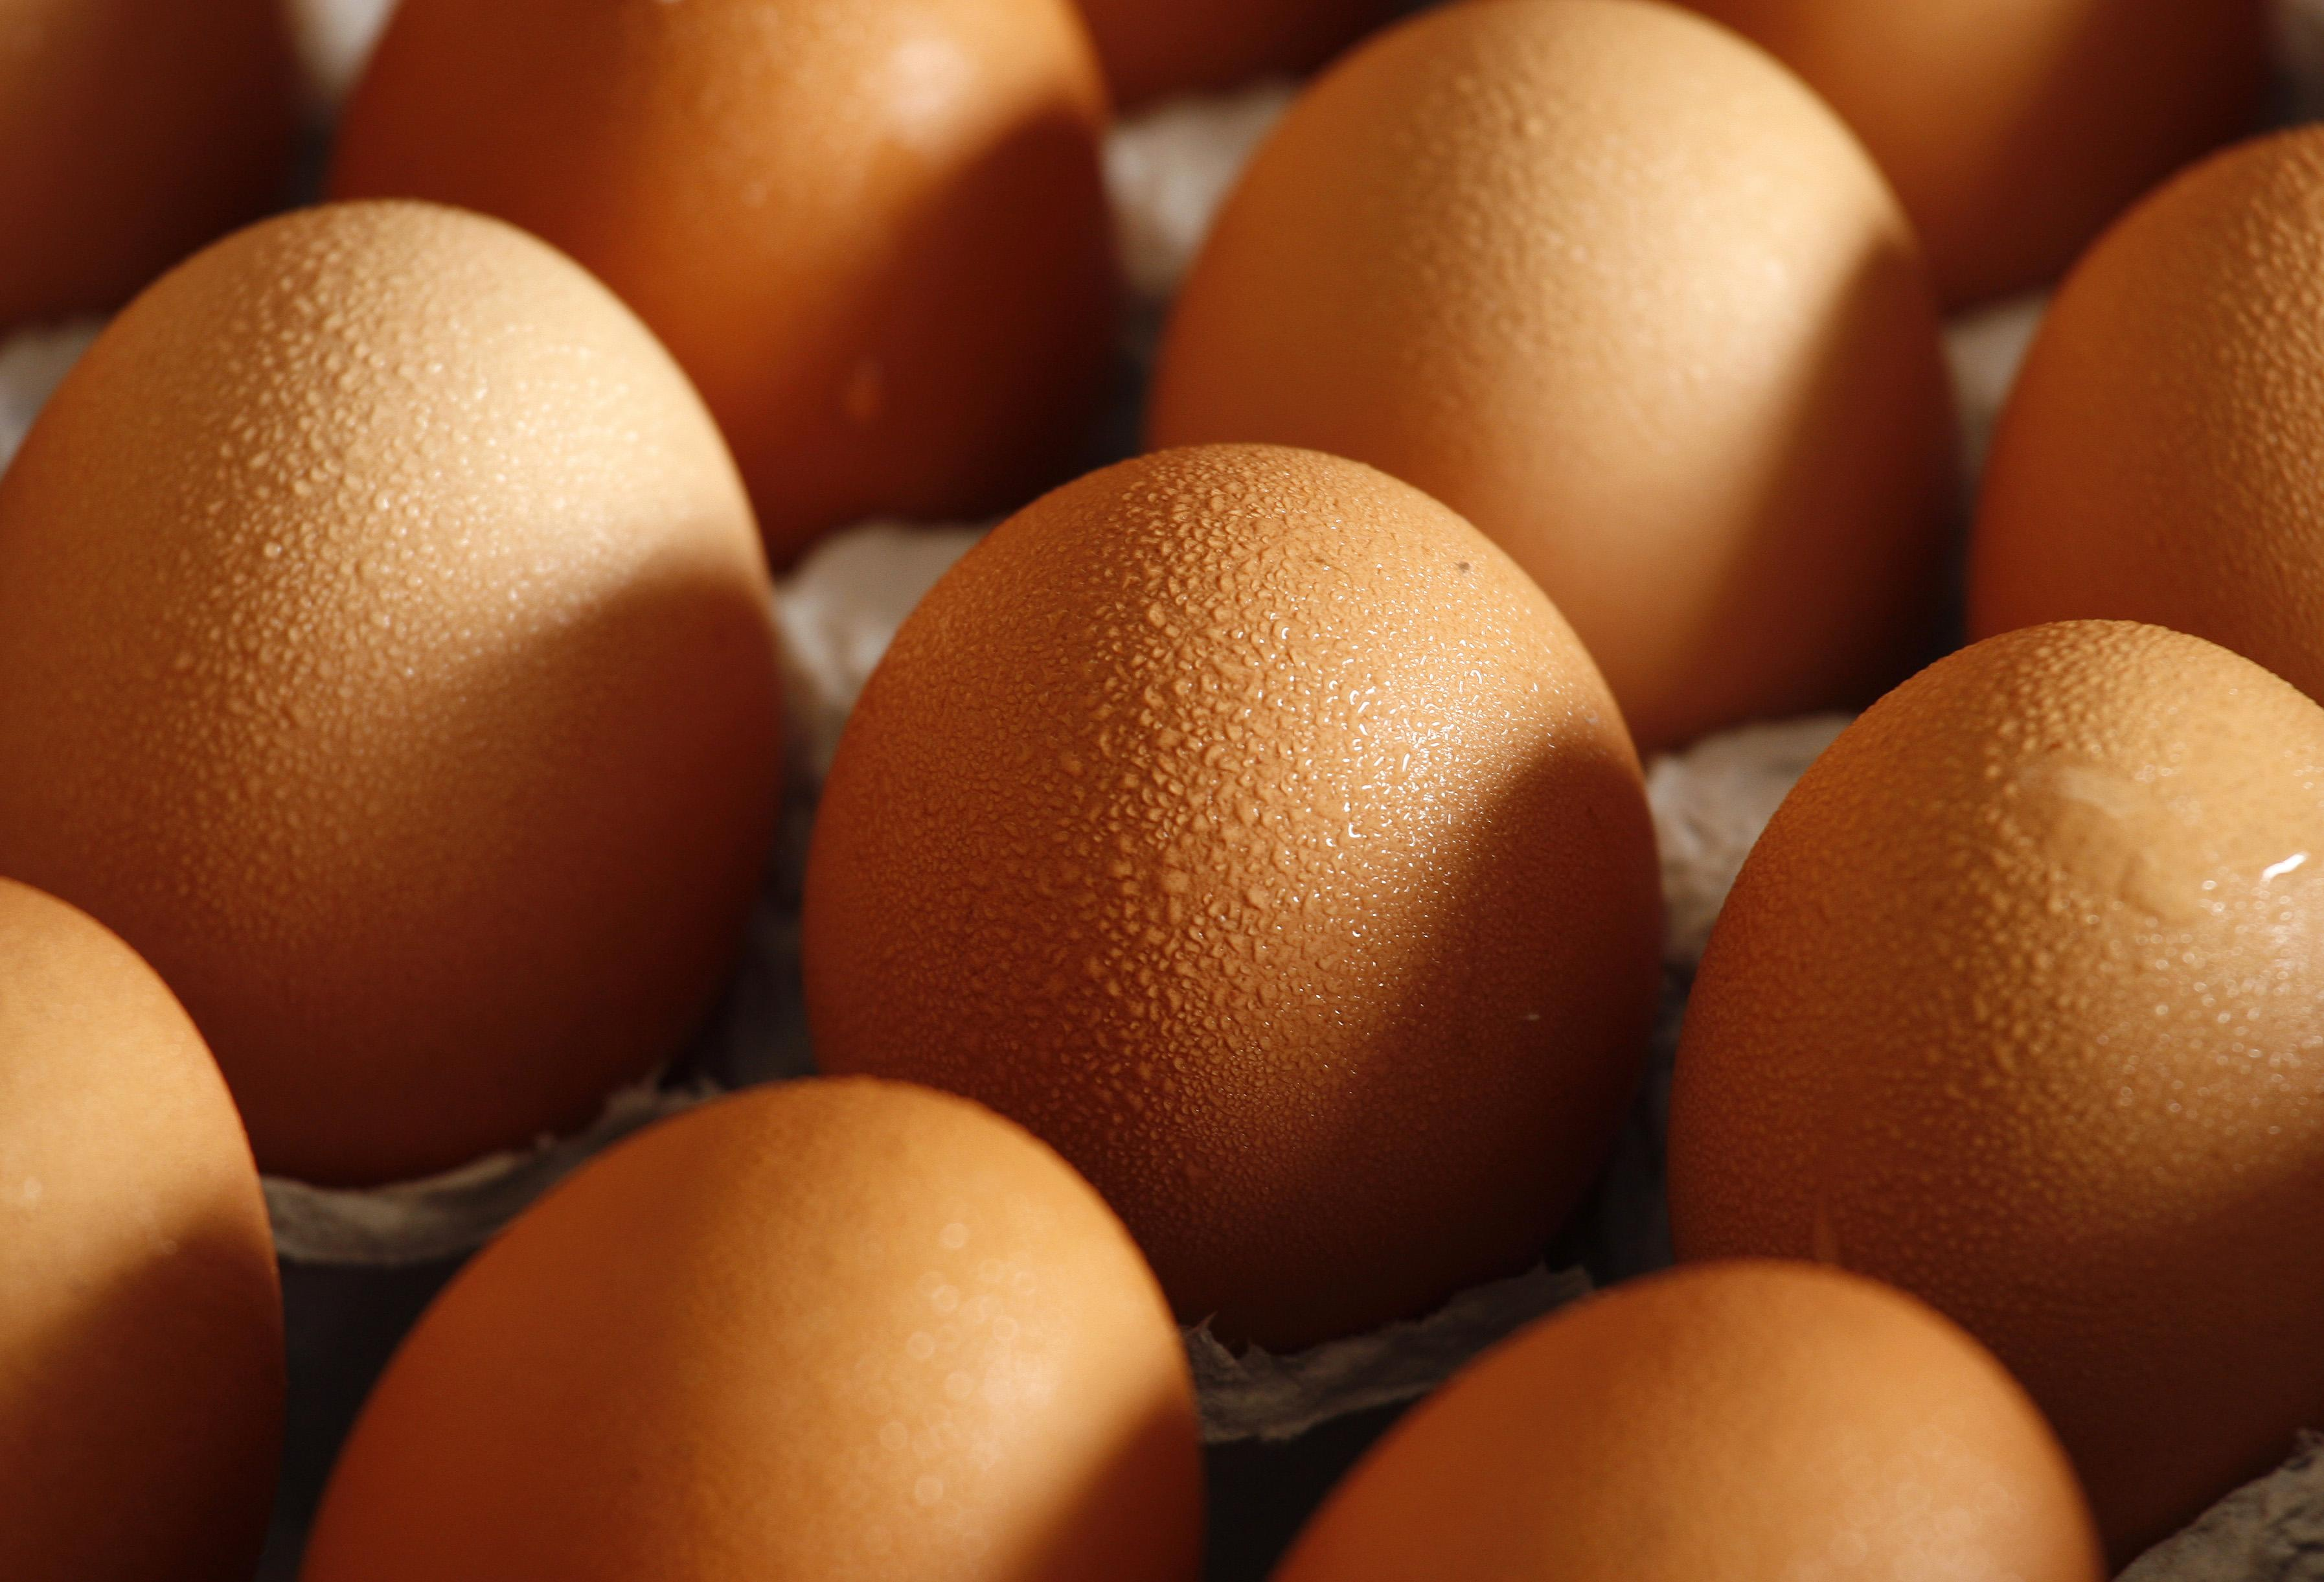 Eggs from mainland China are seen at a wholesale market in Hong Kong yesterday.